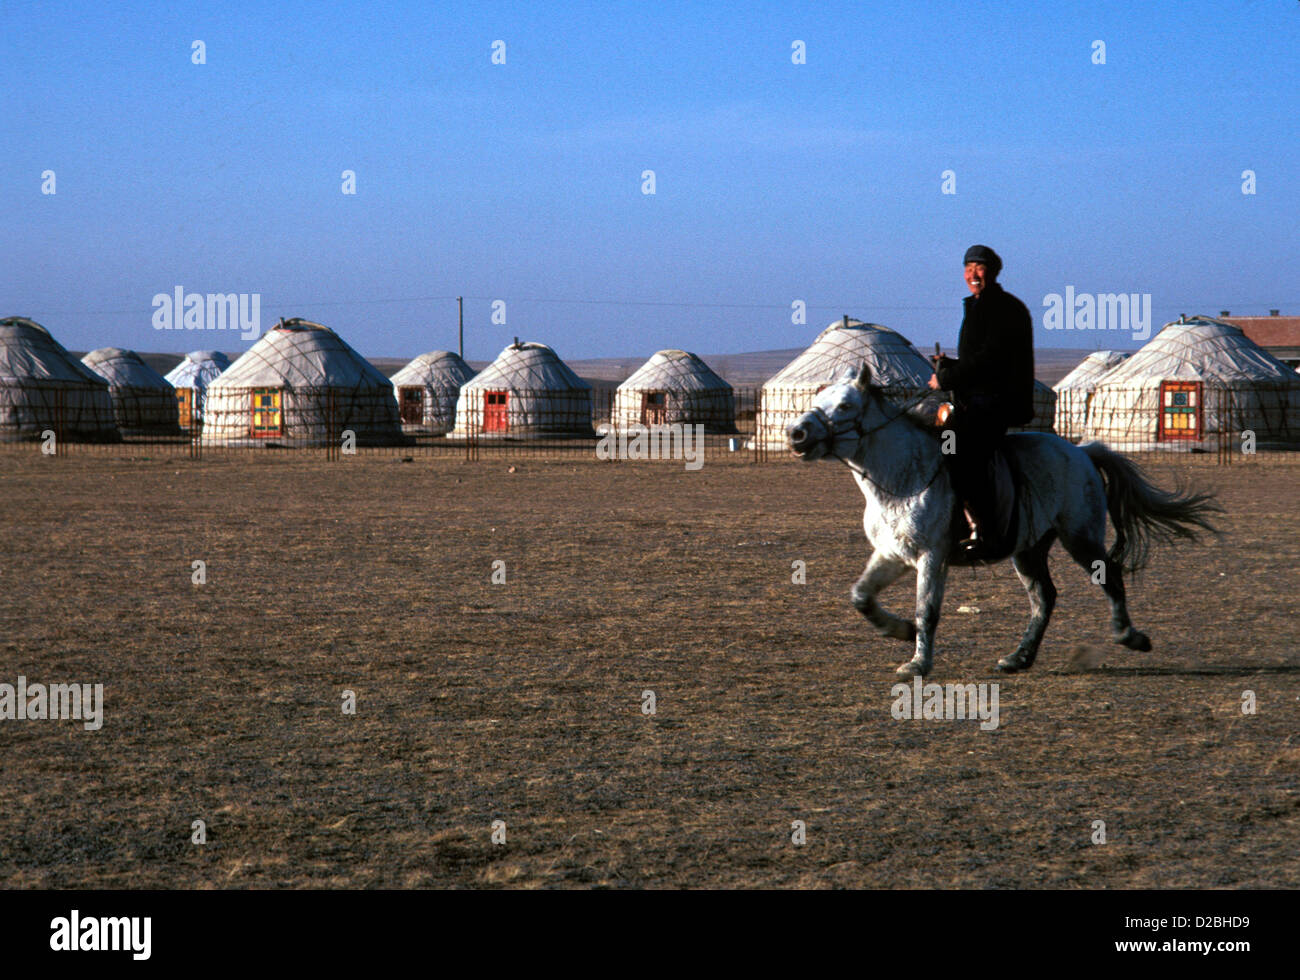 Finding my heaven on earth- INNER MONGOLIA | THE OPEN ROAD |Inner Mongolia Housing